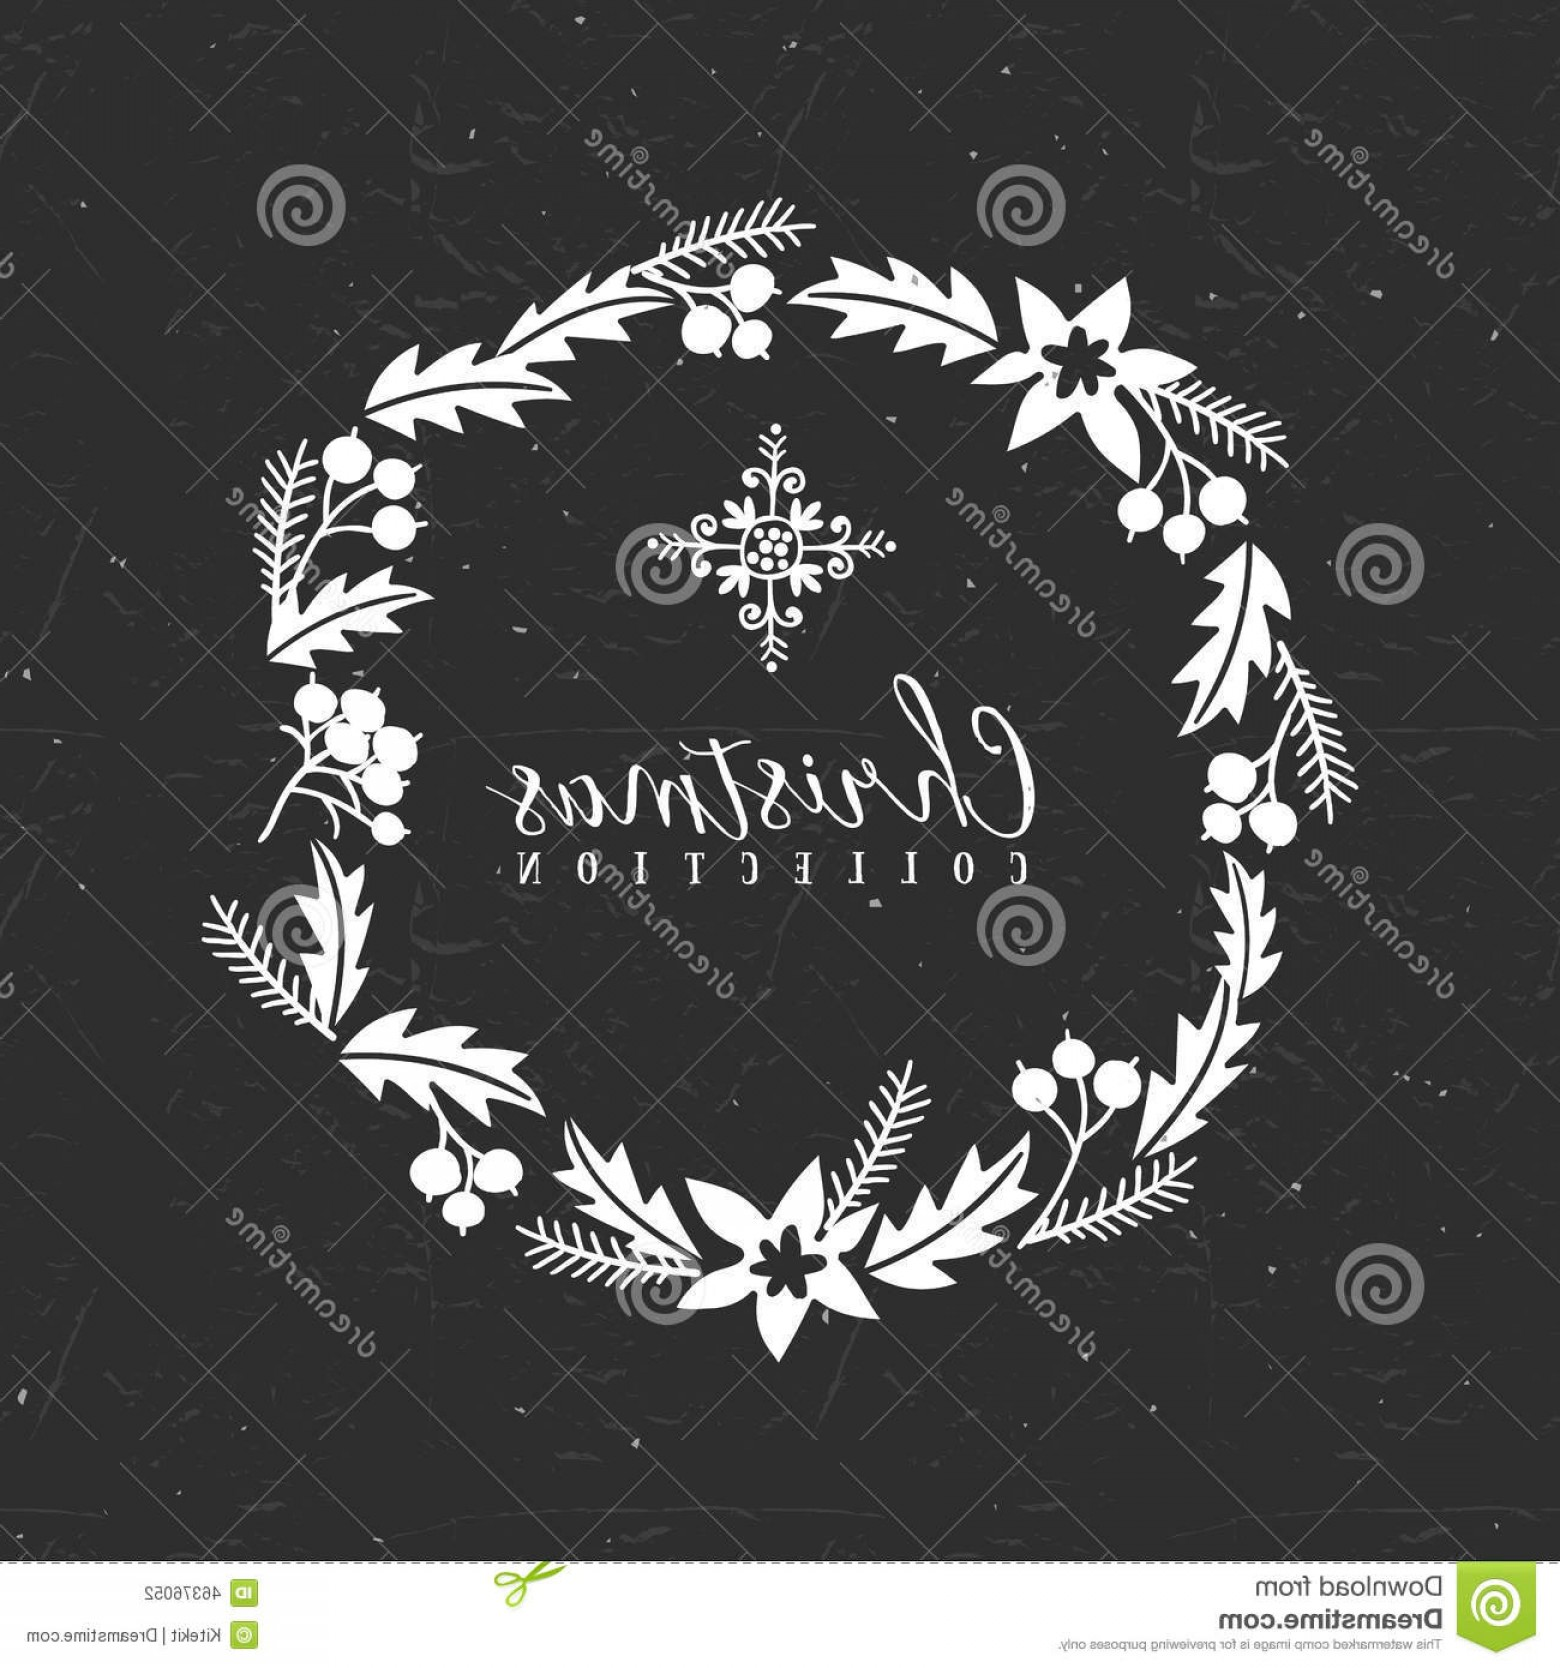 Vector Snowflake Wreath: Stock Illustration Chalk Decorative Christmas Greeting Wreath Snowflake Collection Hand Drawn Illustration Design Elements Image